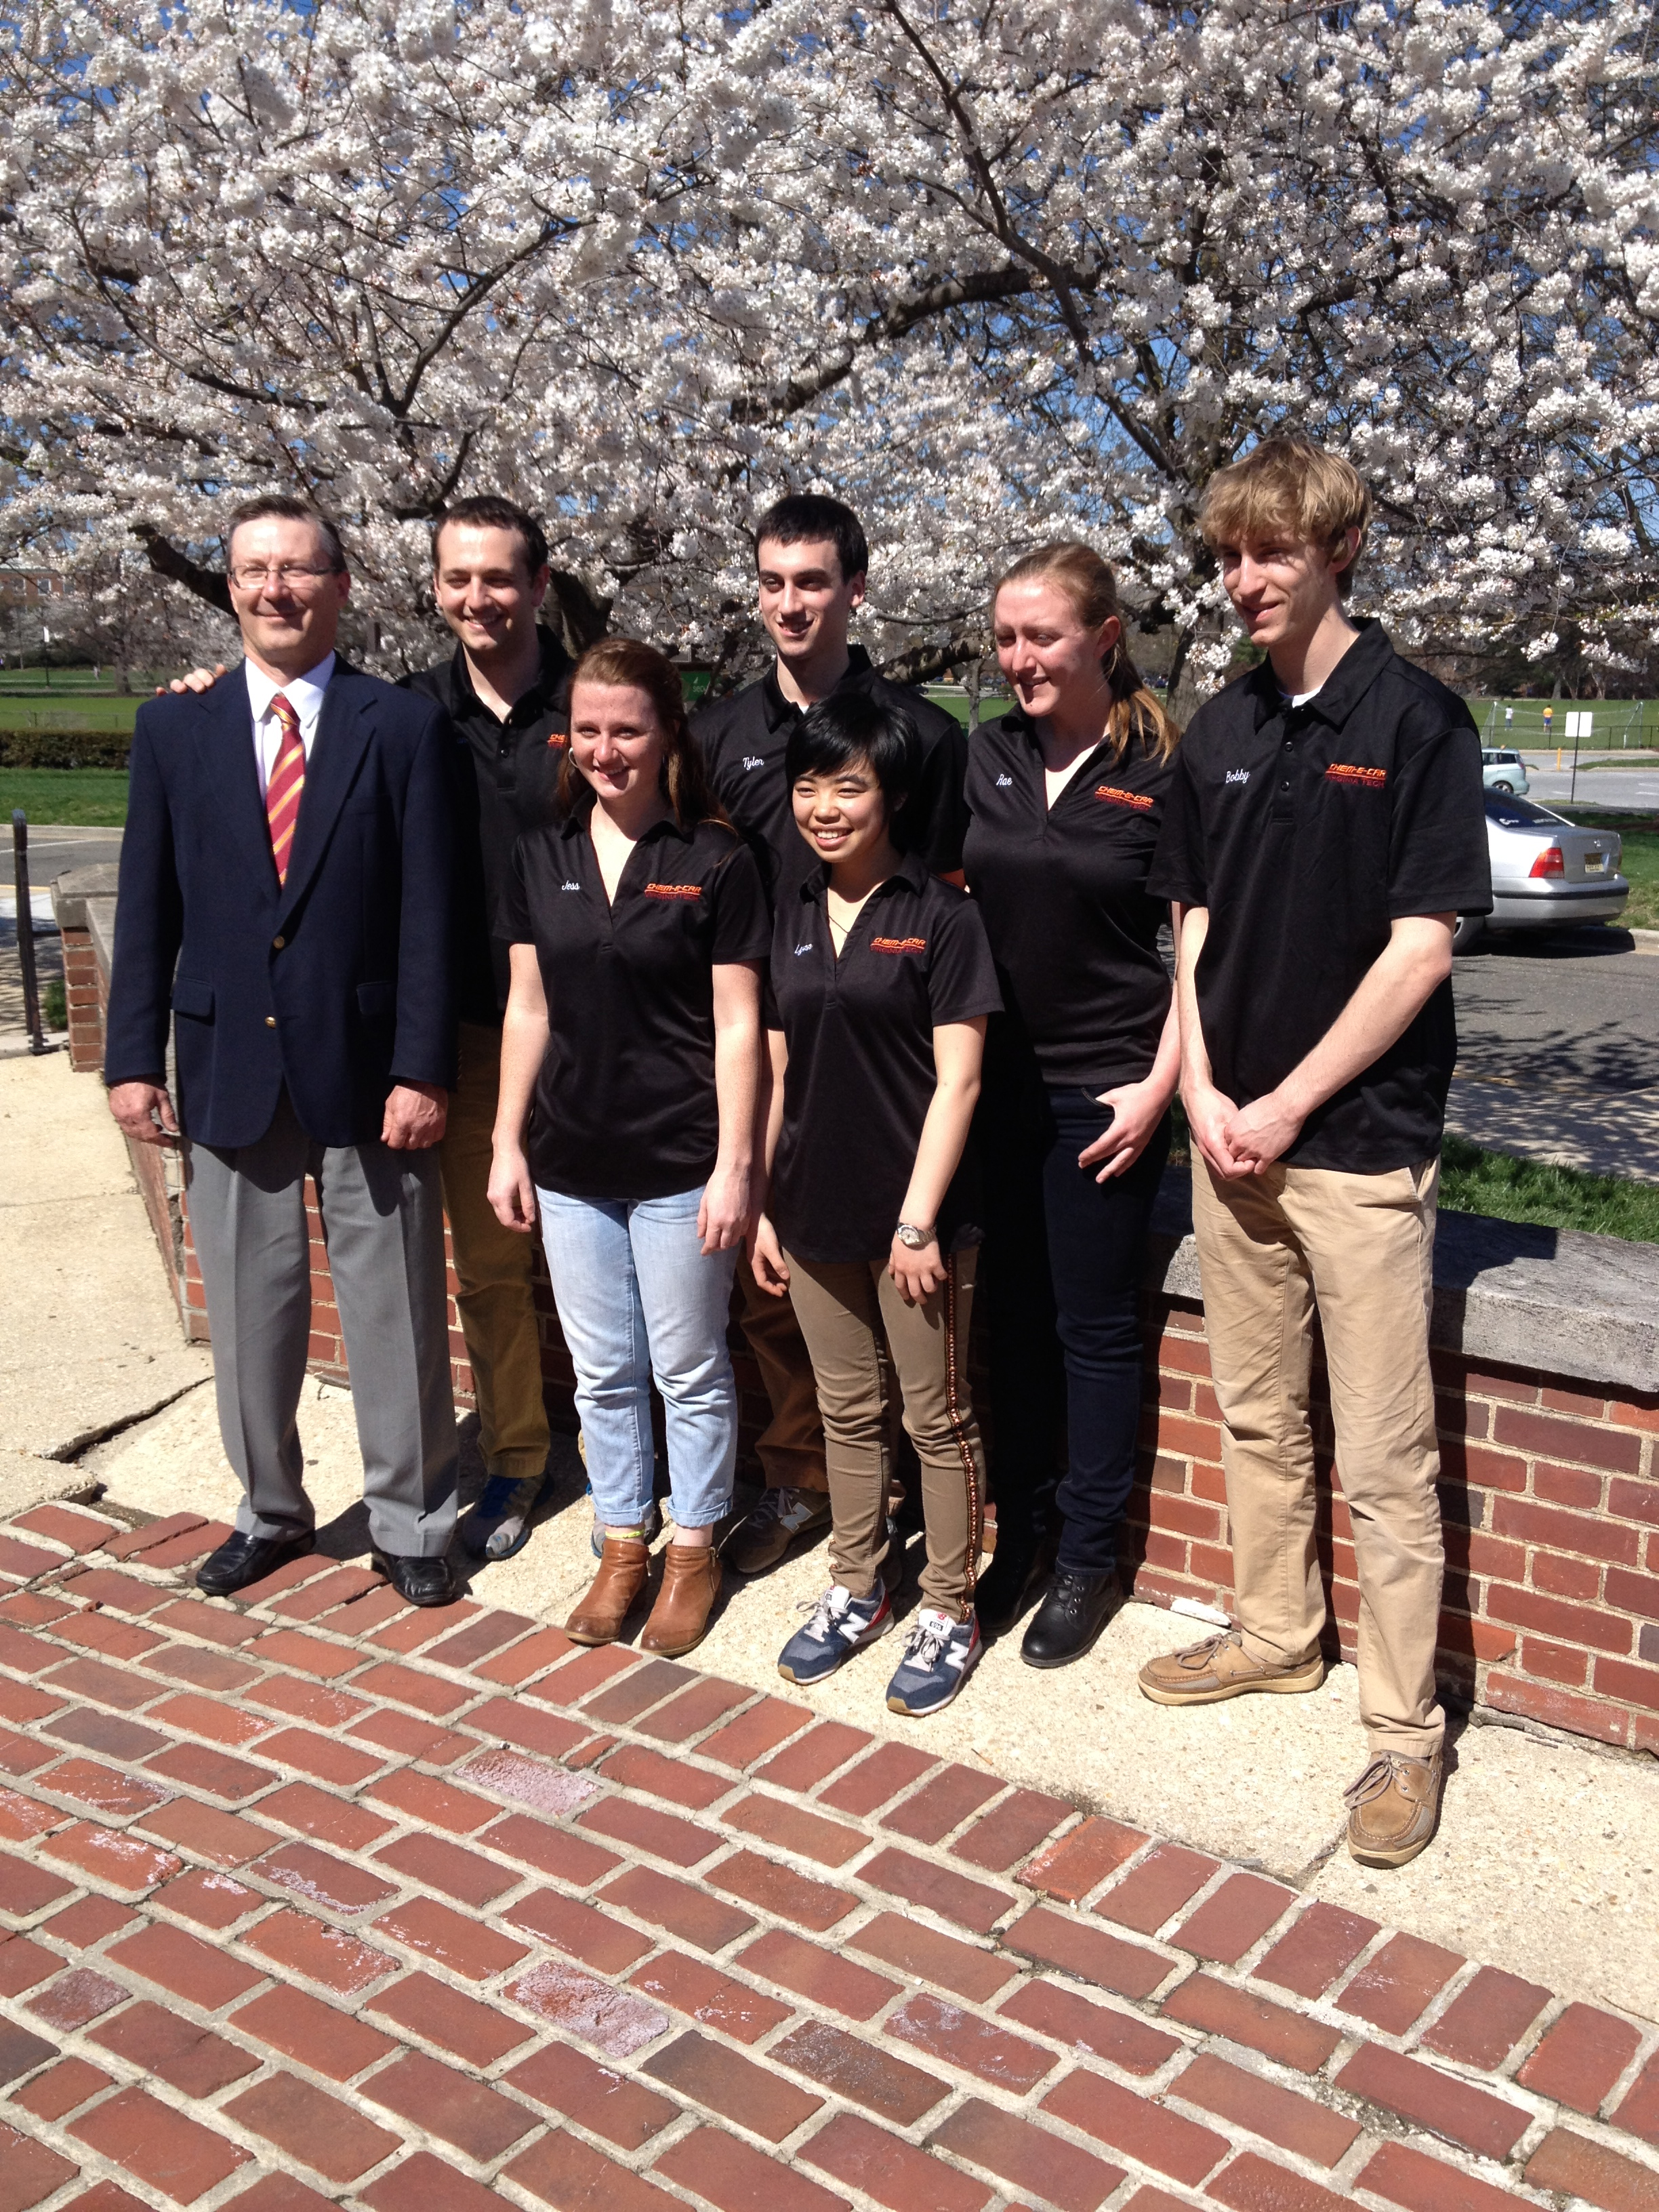 From left: Peter Rim, Coogan Thompson, Jessica Kersey, Tyler Reif, Yining Hao, Rachel Crews, and Bobby Hollingsworth.